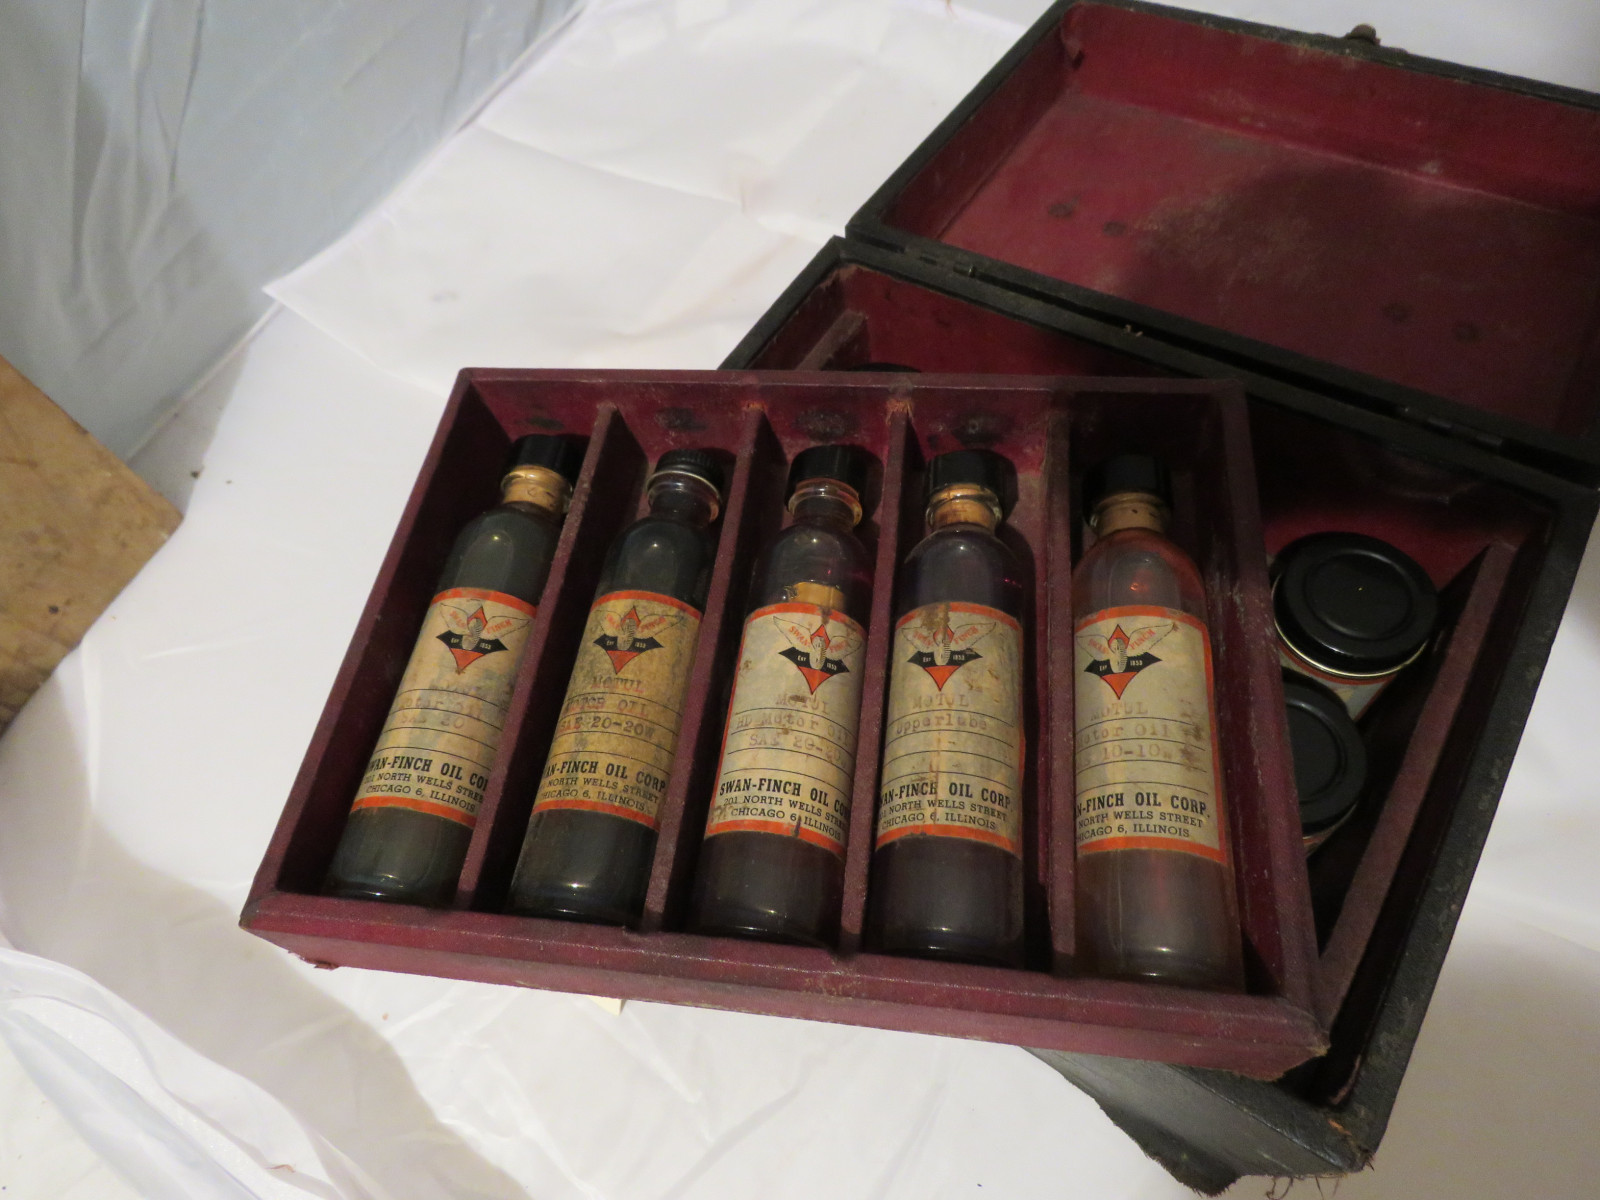 Swan-Finch Oil Company Salesman Sample Kit - Image 3